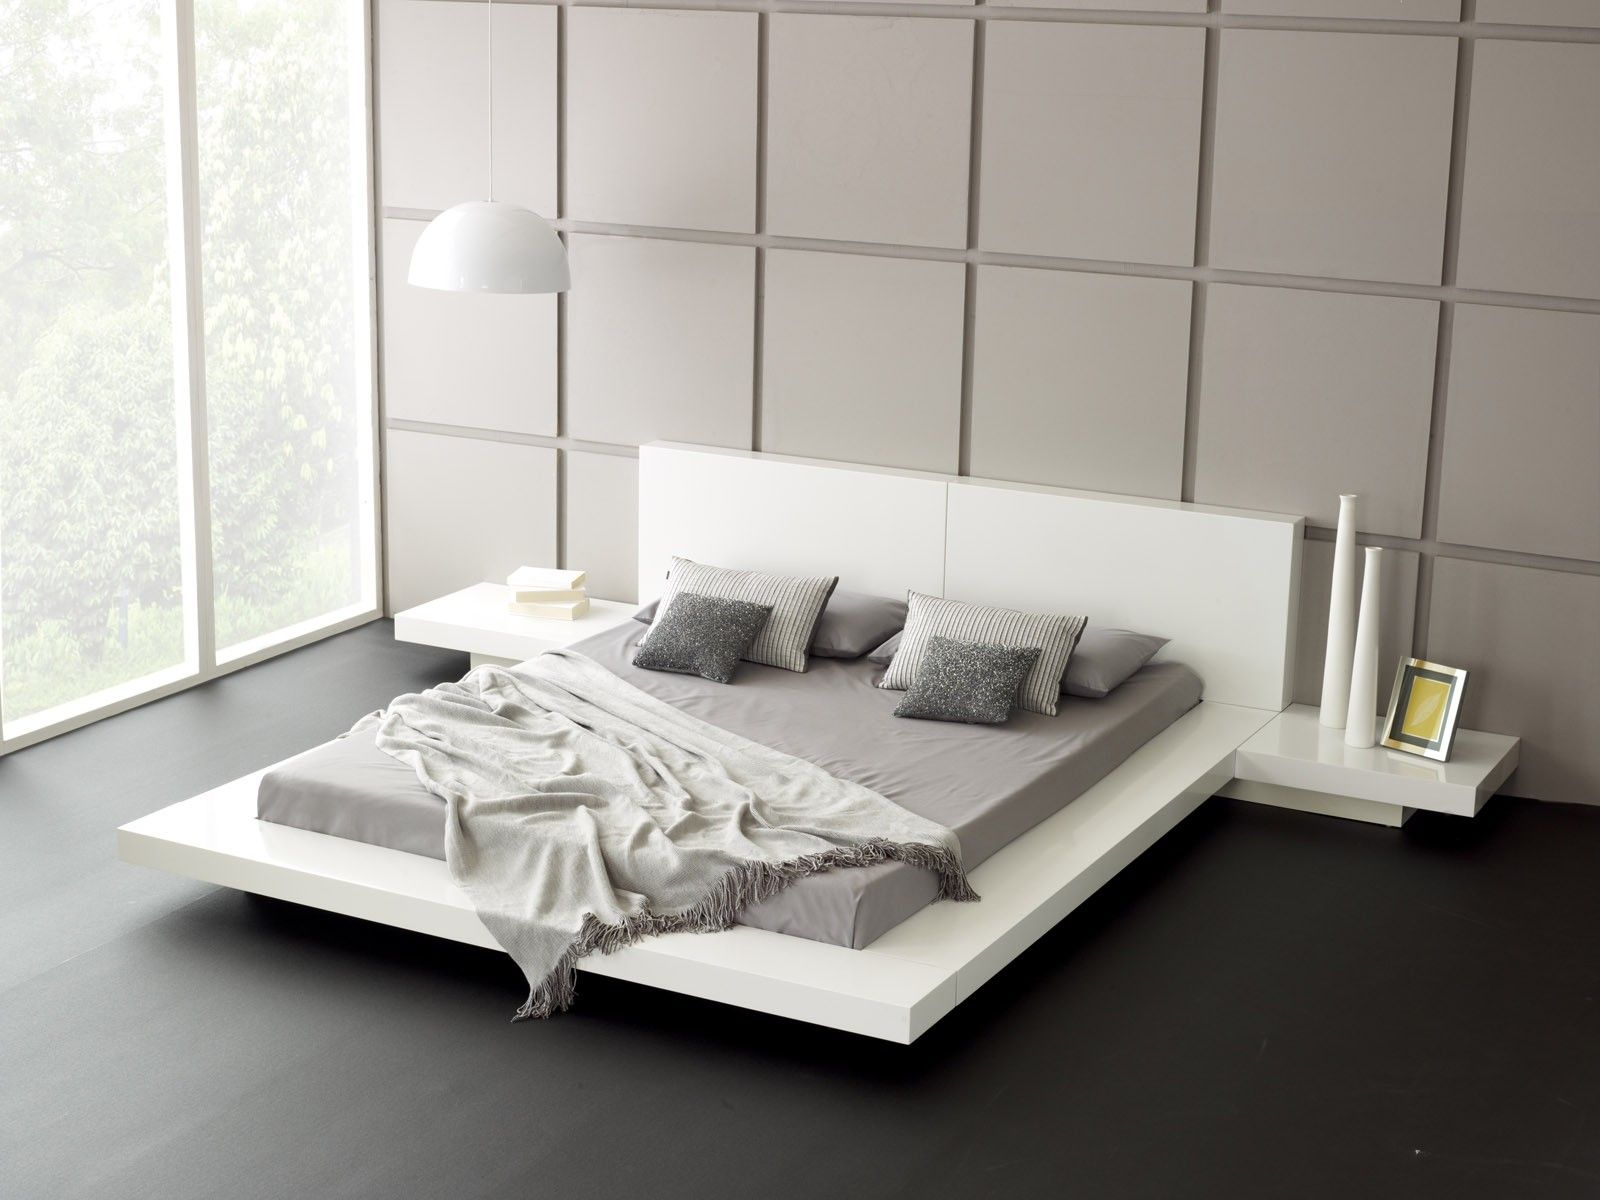 white modern bedroom furniture. White and Grey Bedroom Ideas  Transforming Your Boring Room into Something Special Modern FurnitureModern